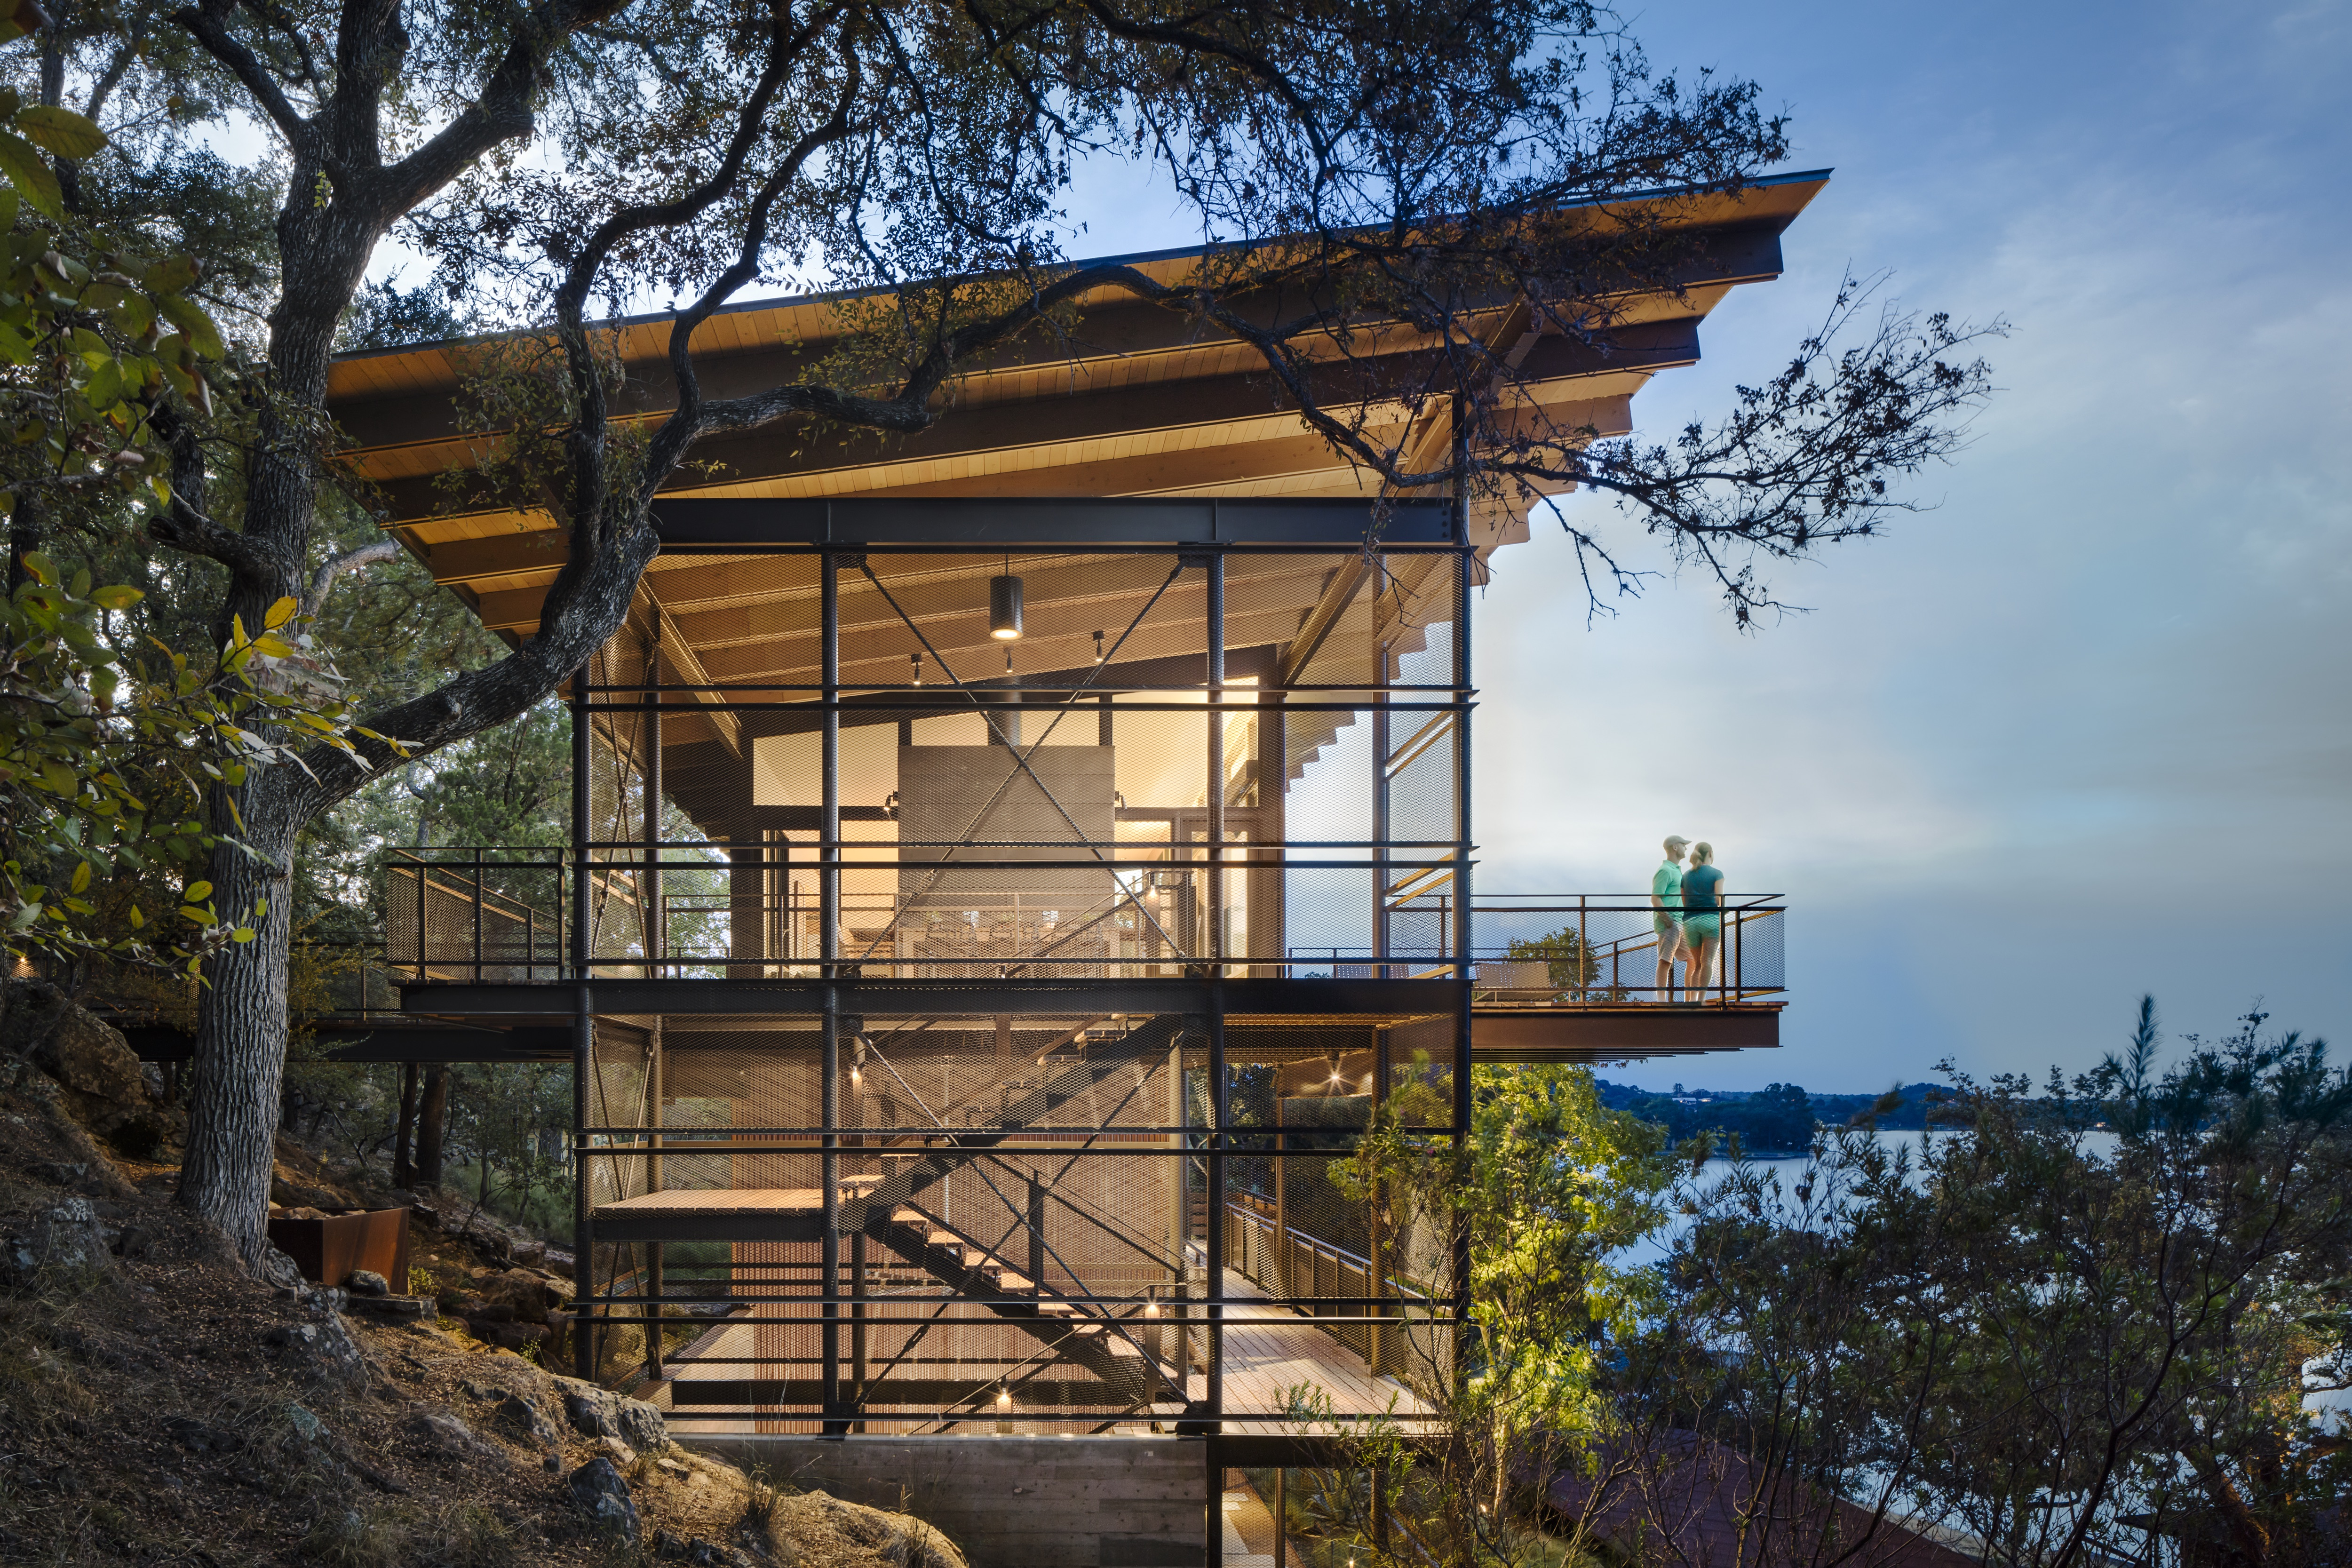 aia 2017 housing awards: the country's best new homes - curbed